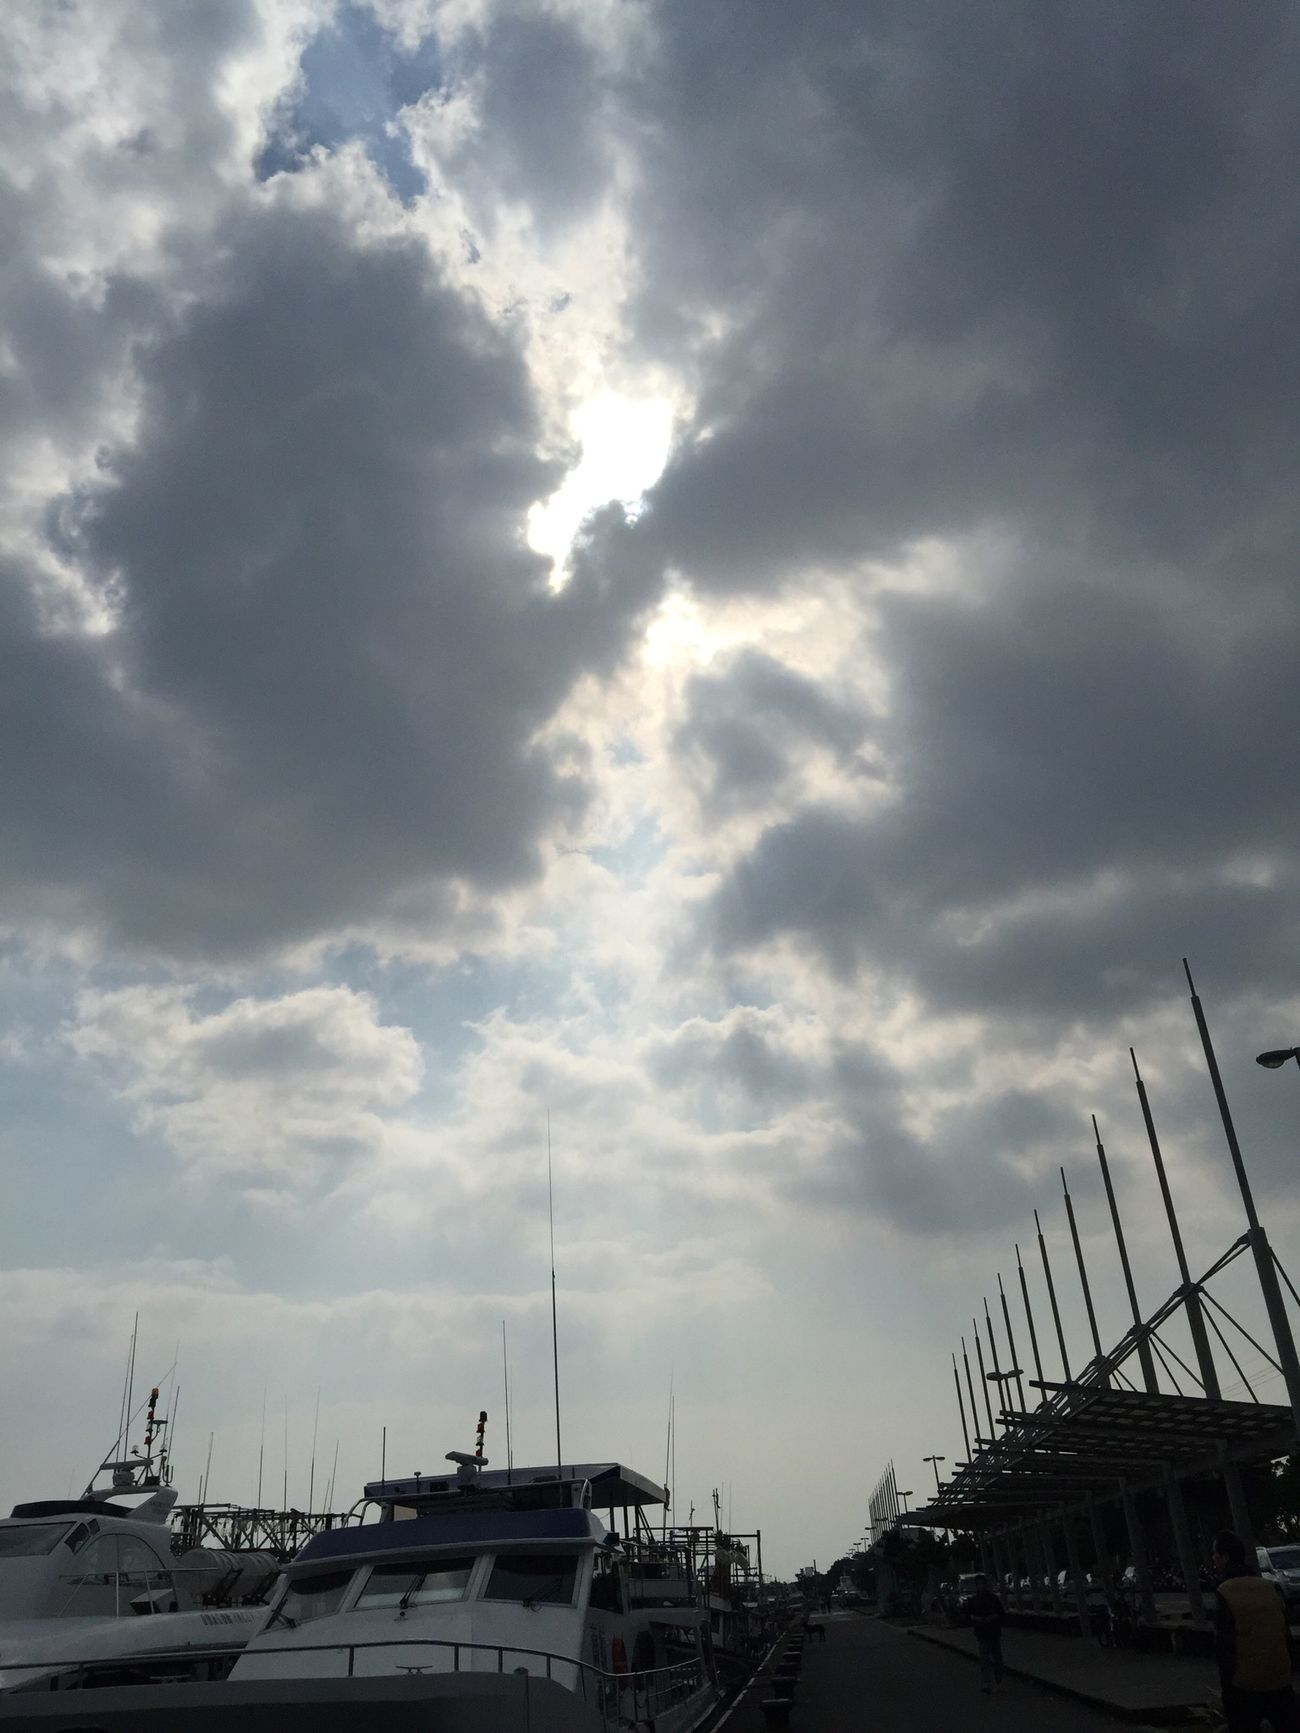 出海 Going Sailing Enjoying The Sun Relaxing Starting A Trip Traveling Life Beautiful Taking Photos Happy Clouds